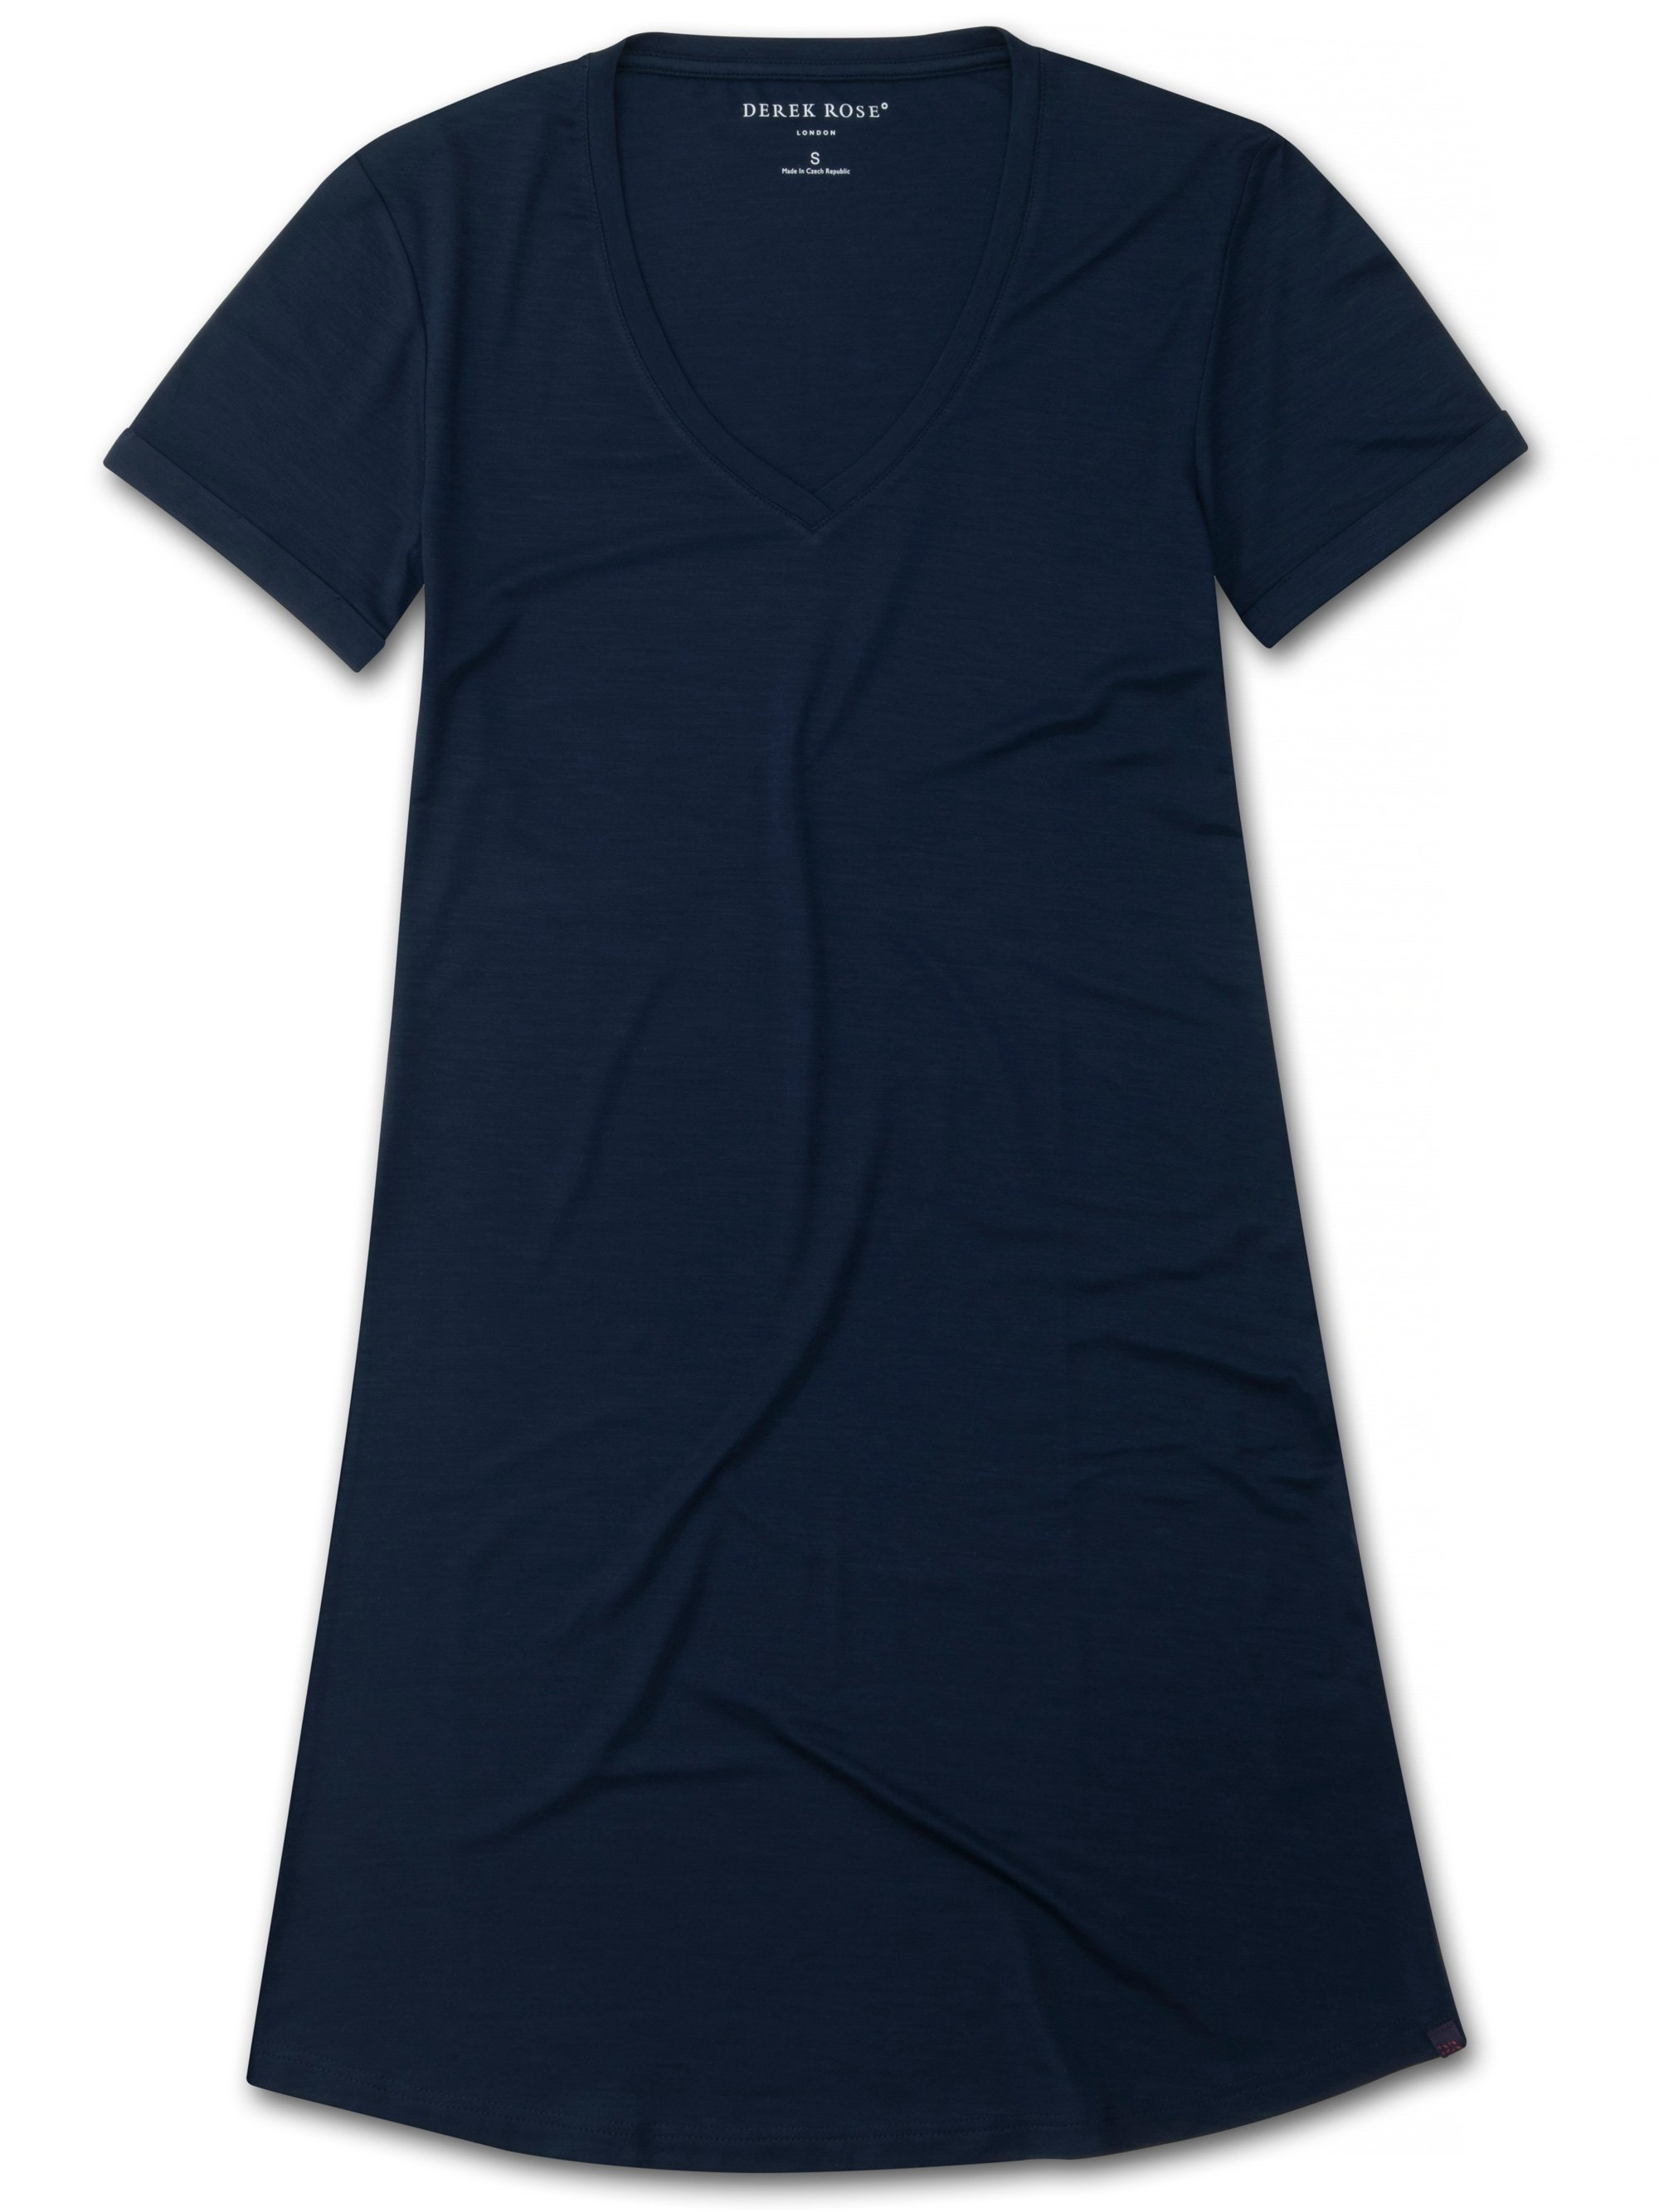 Women's V-Neck Sleep T-Shirt Lara Micro Modal Stretch Navy